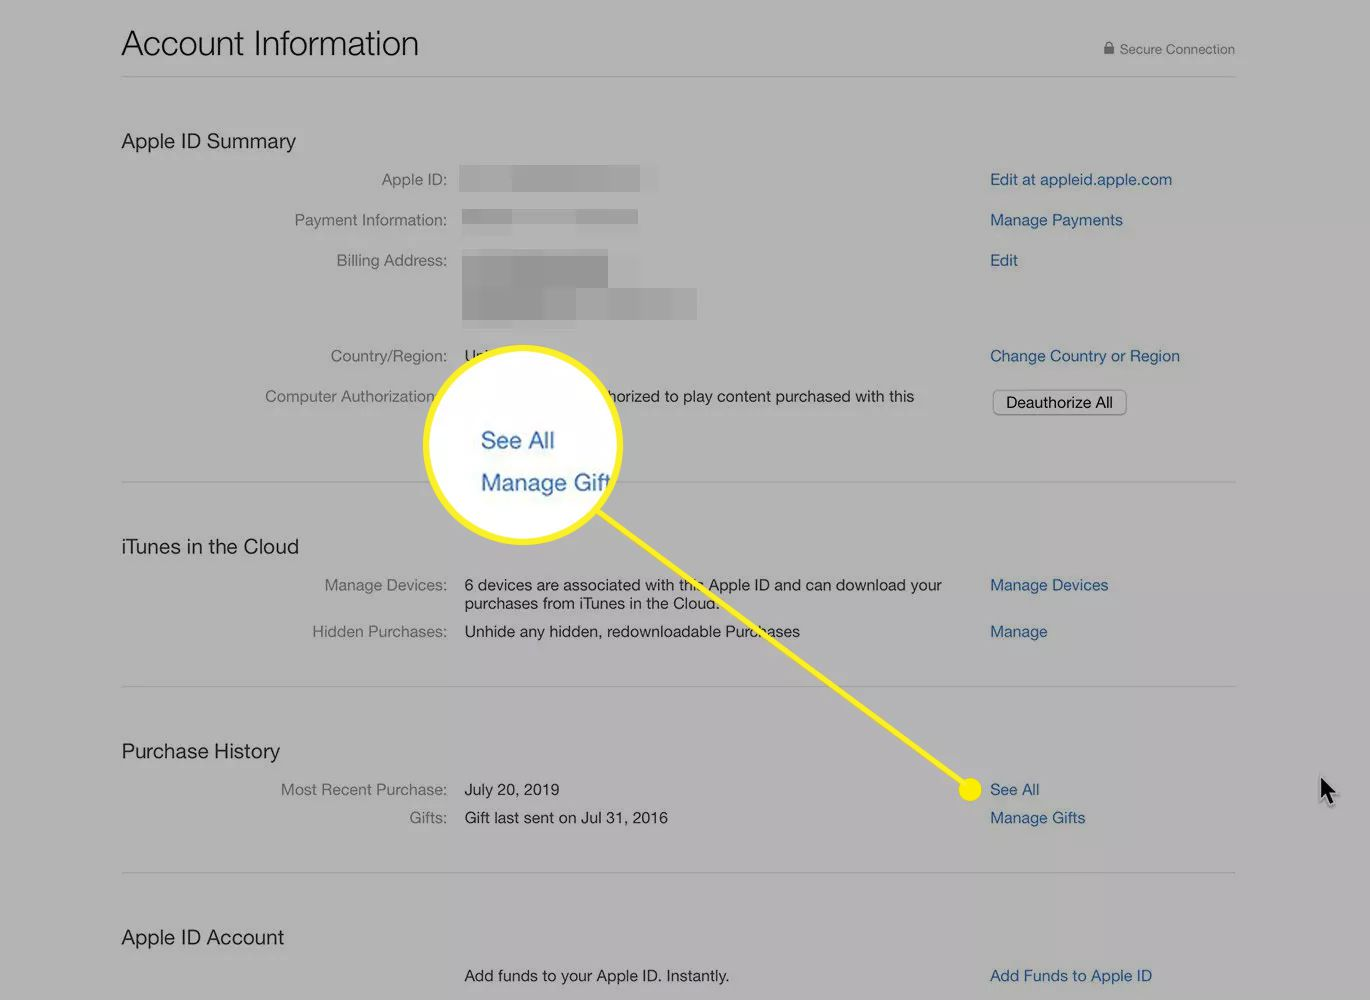 Account Information page in Apple ID with the See All button highlighted